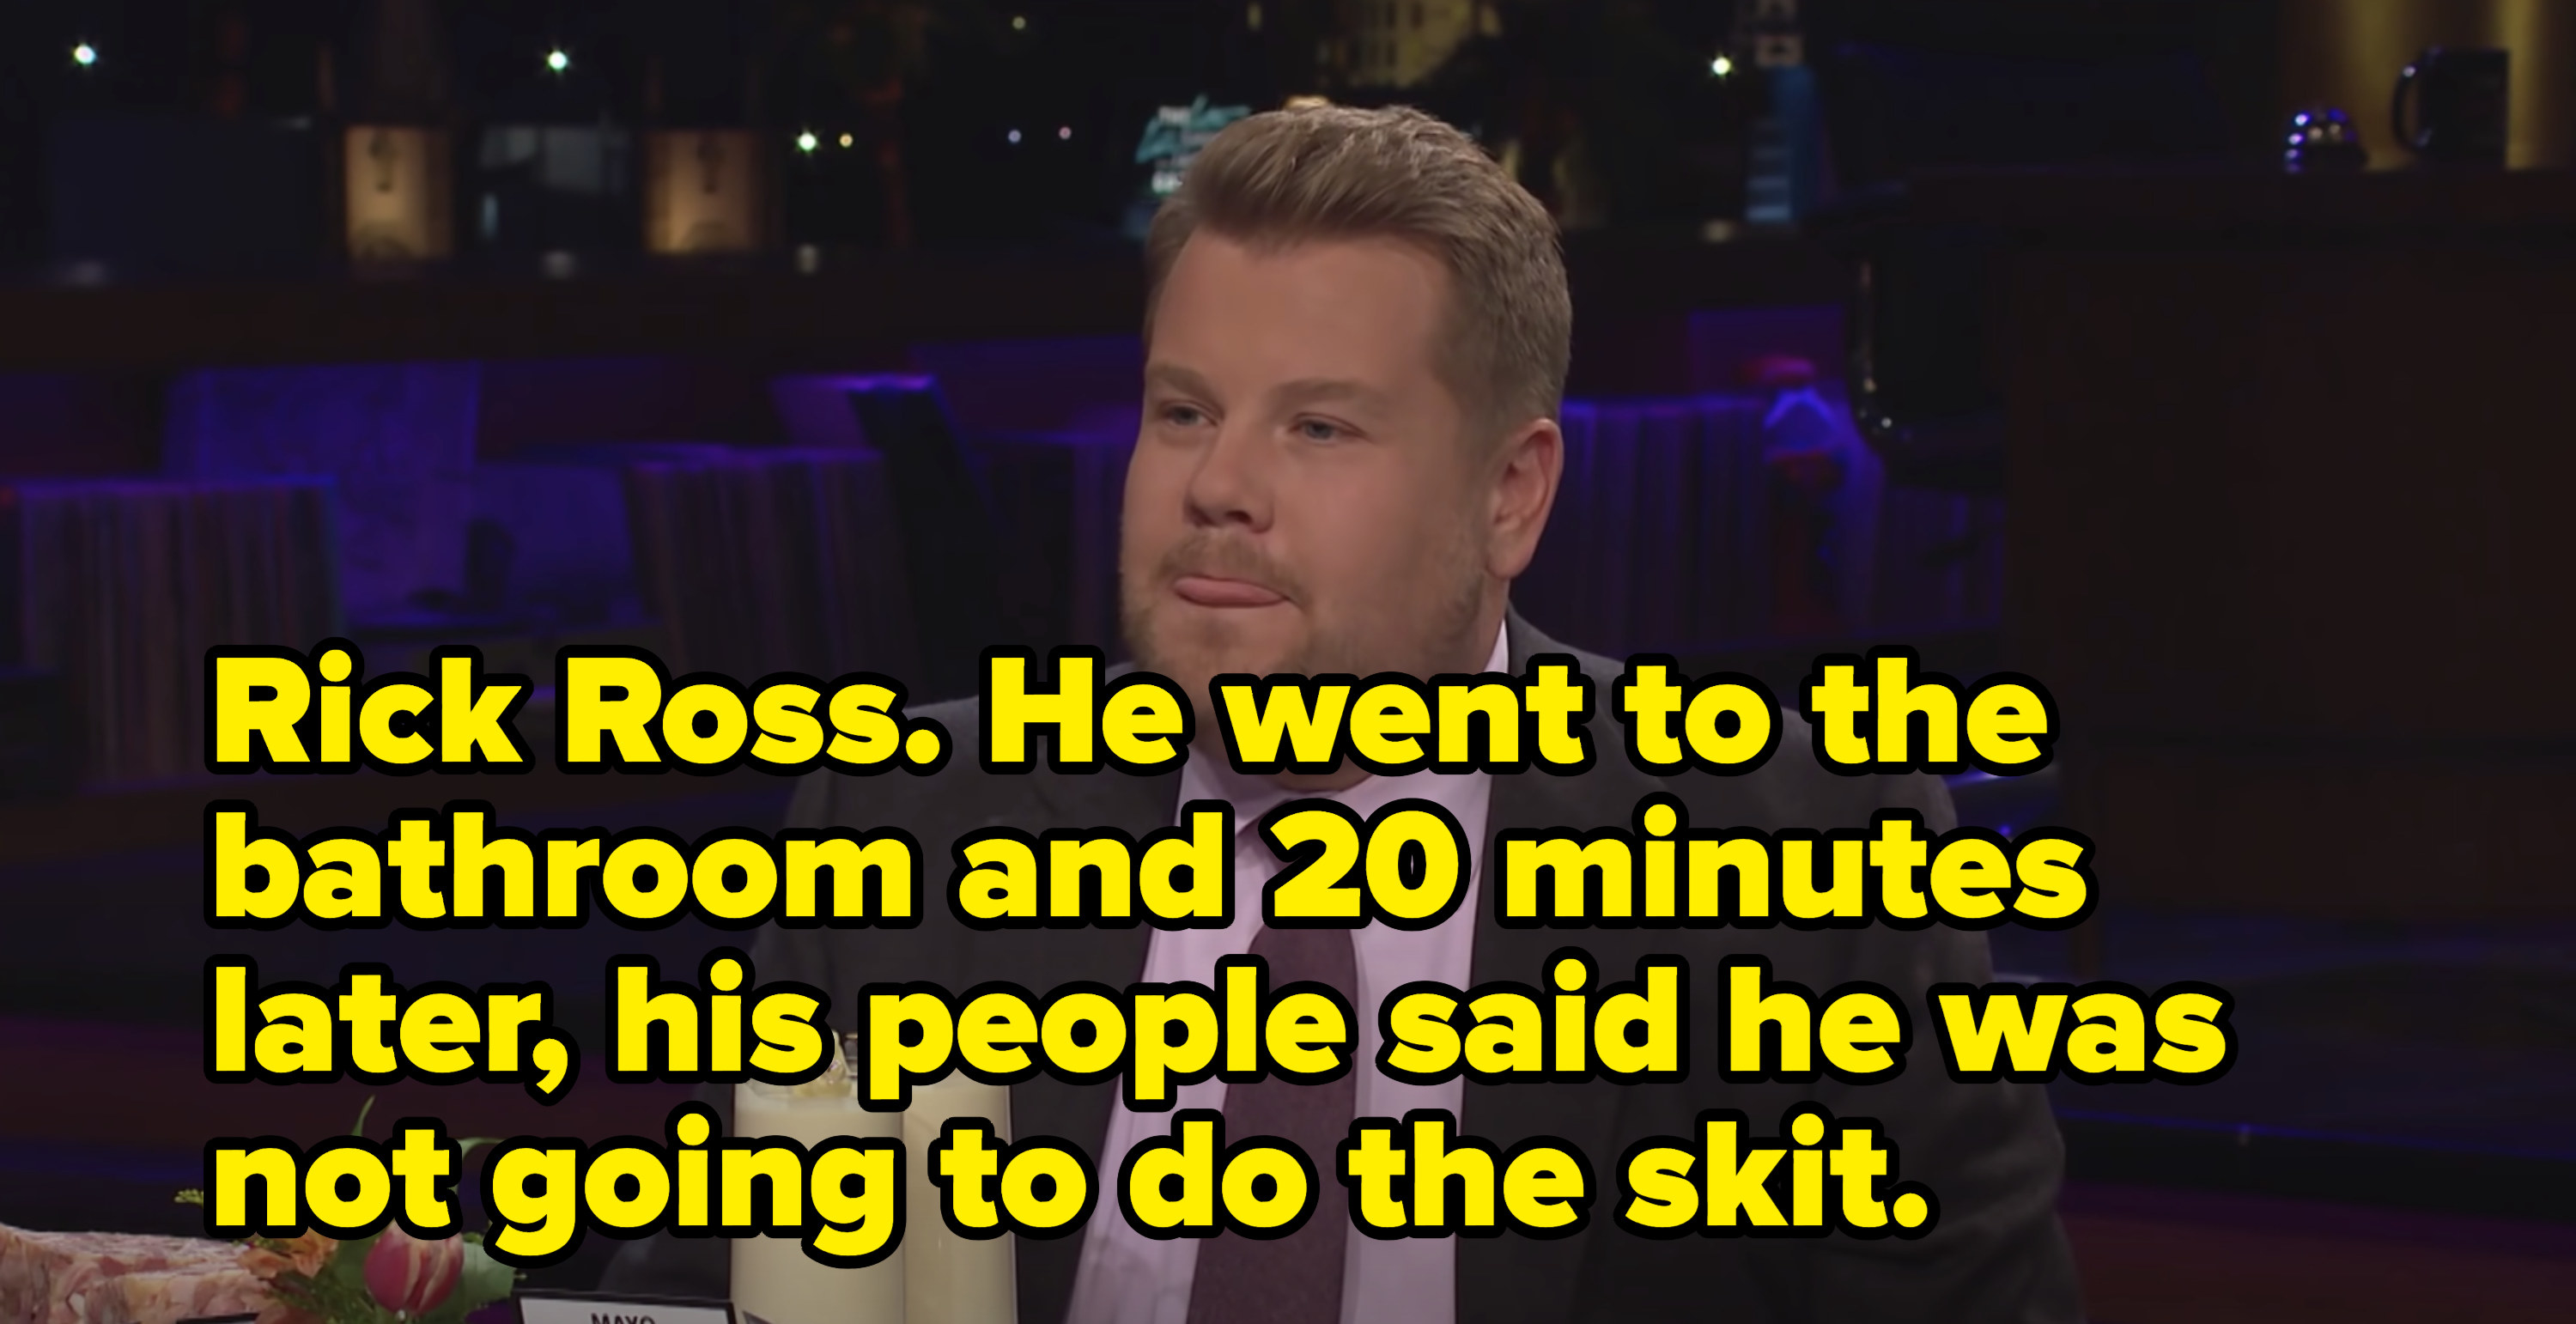 James Corden revealing Rick Ross as his worst guest